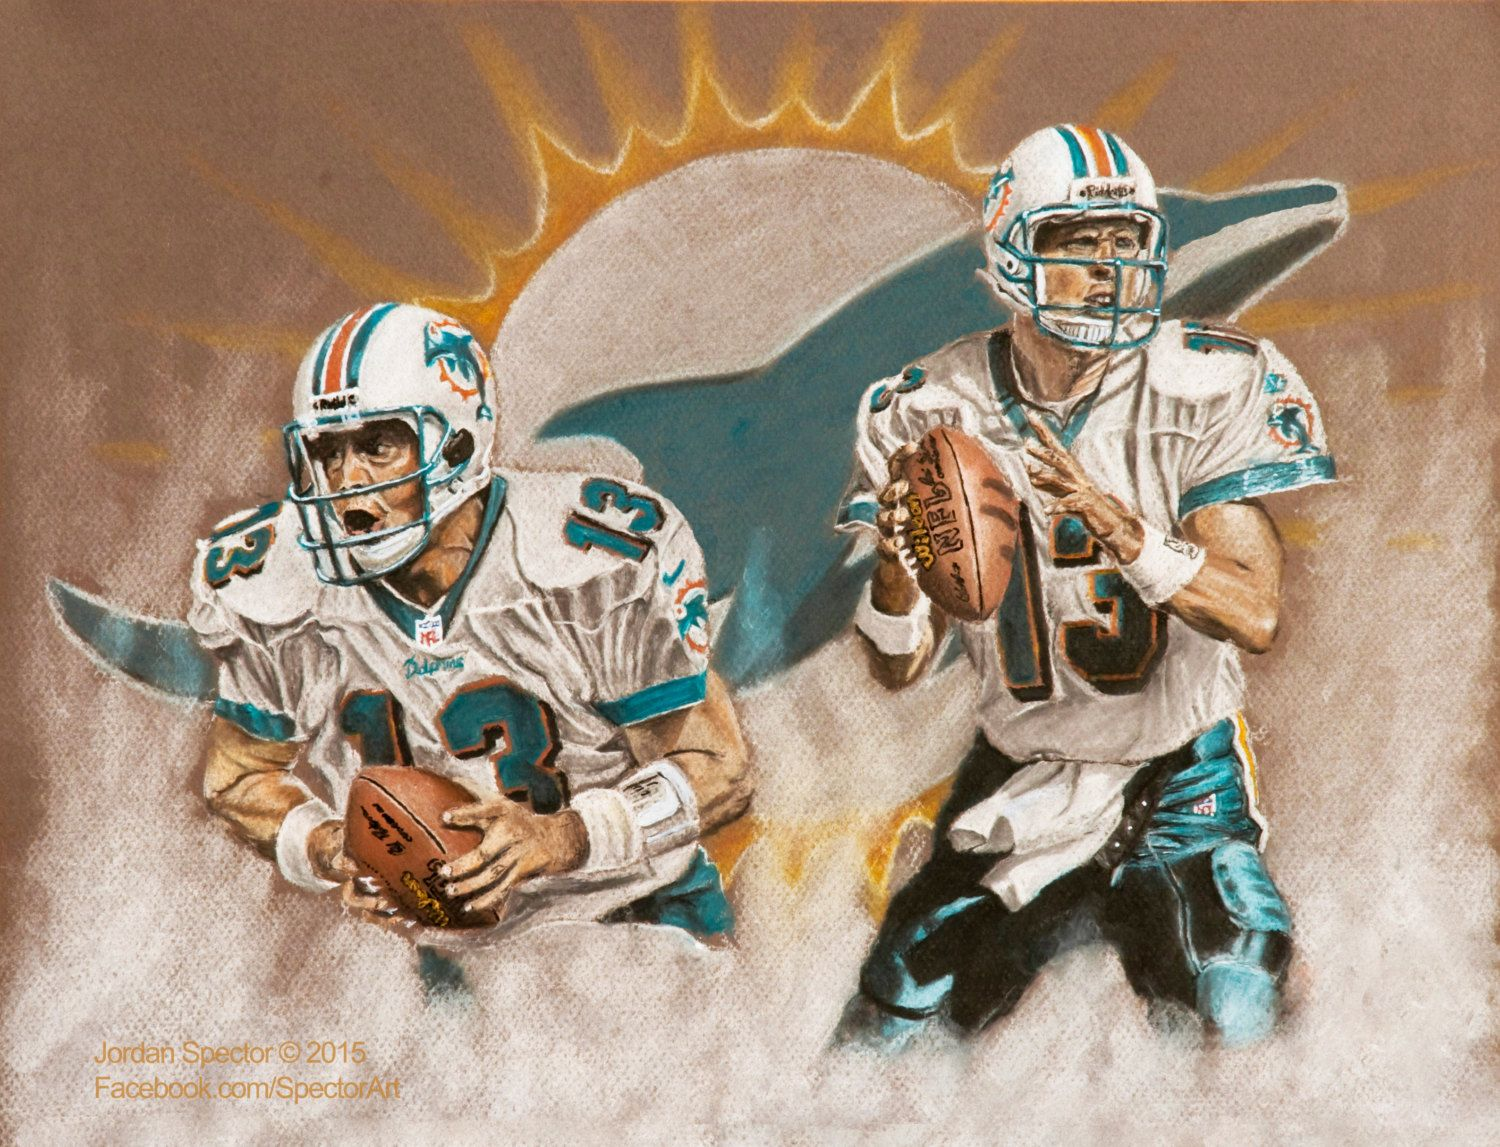 224 Best MIAMI DOLPHINS Images On Pinterest